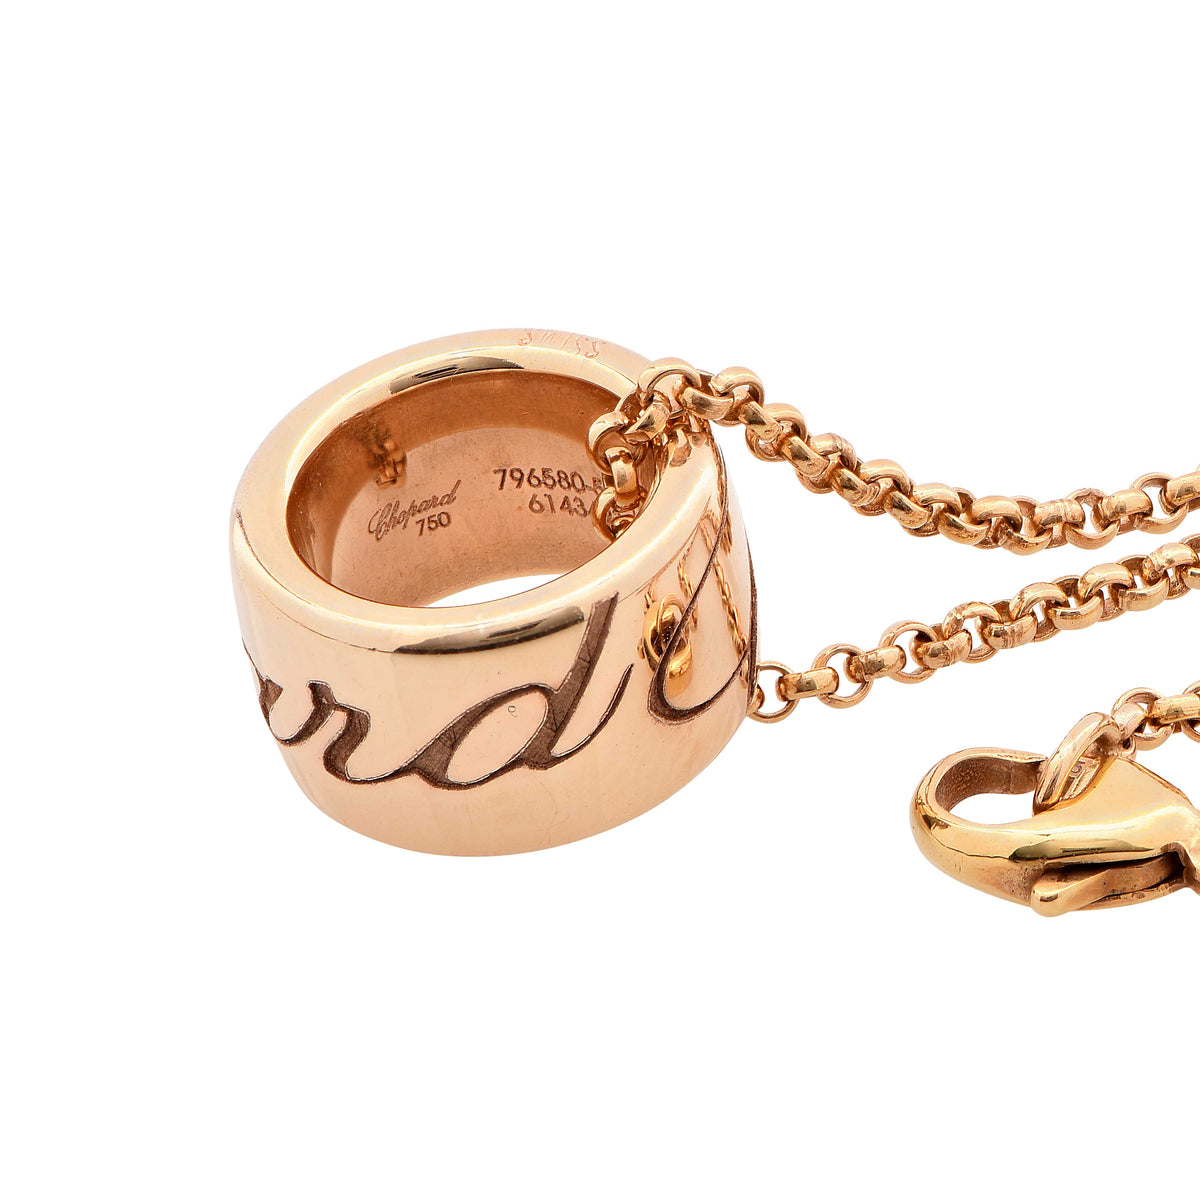 Chopard Chopardissimo 18 Karat Rose Gold Necklace